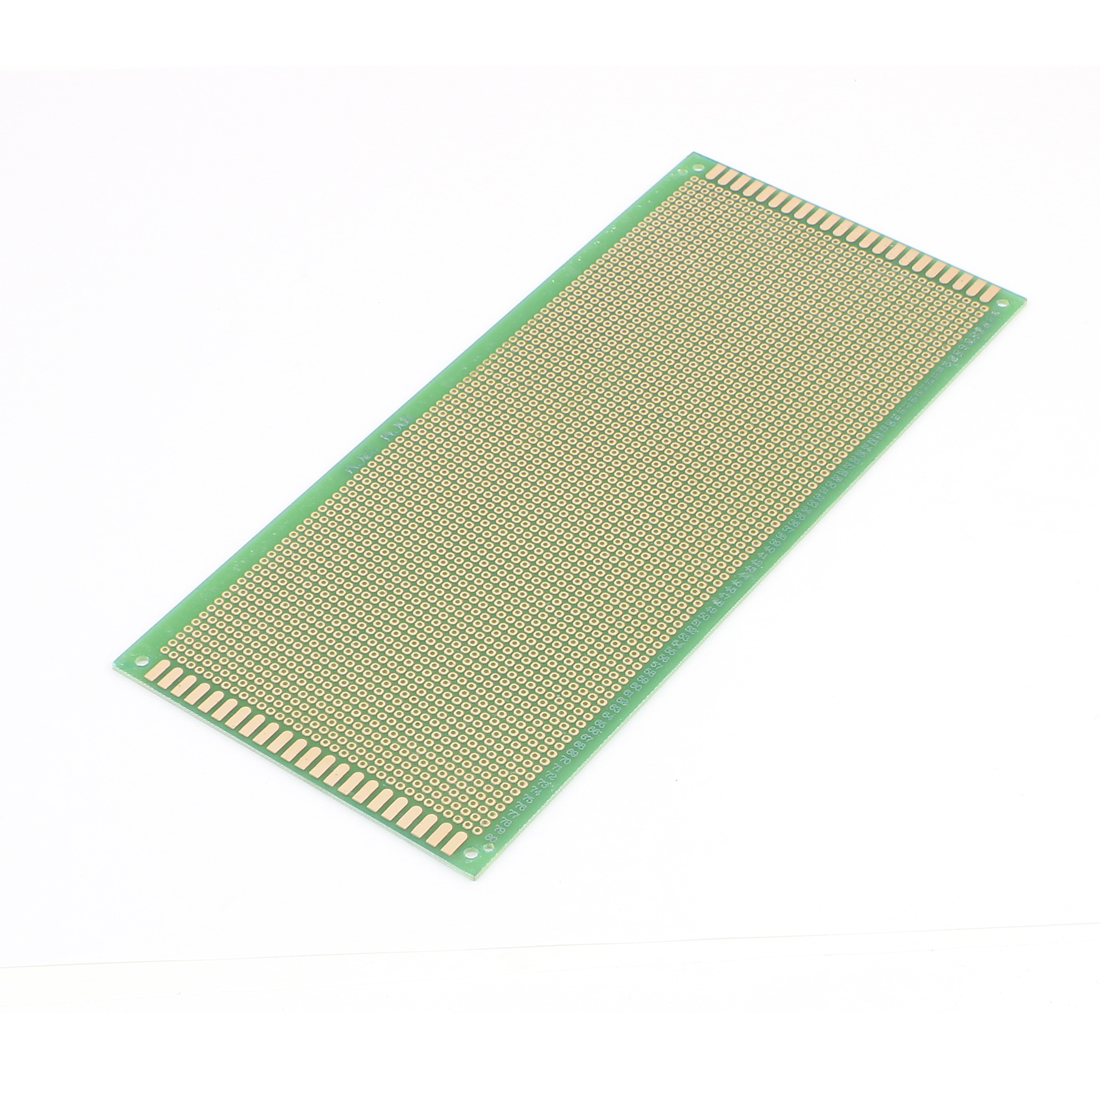 10x22cm DIY Prototype Experiment Universal Single Side Paper PCB Board